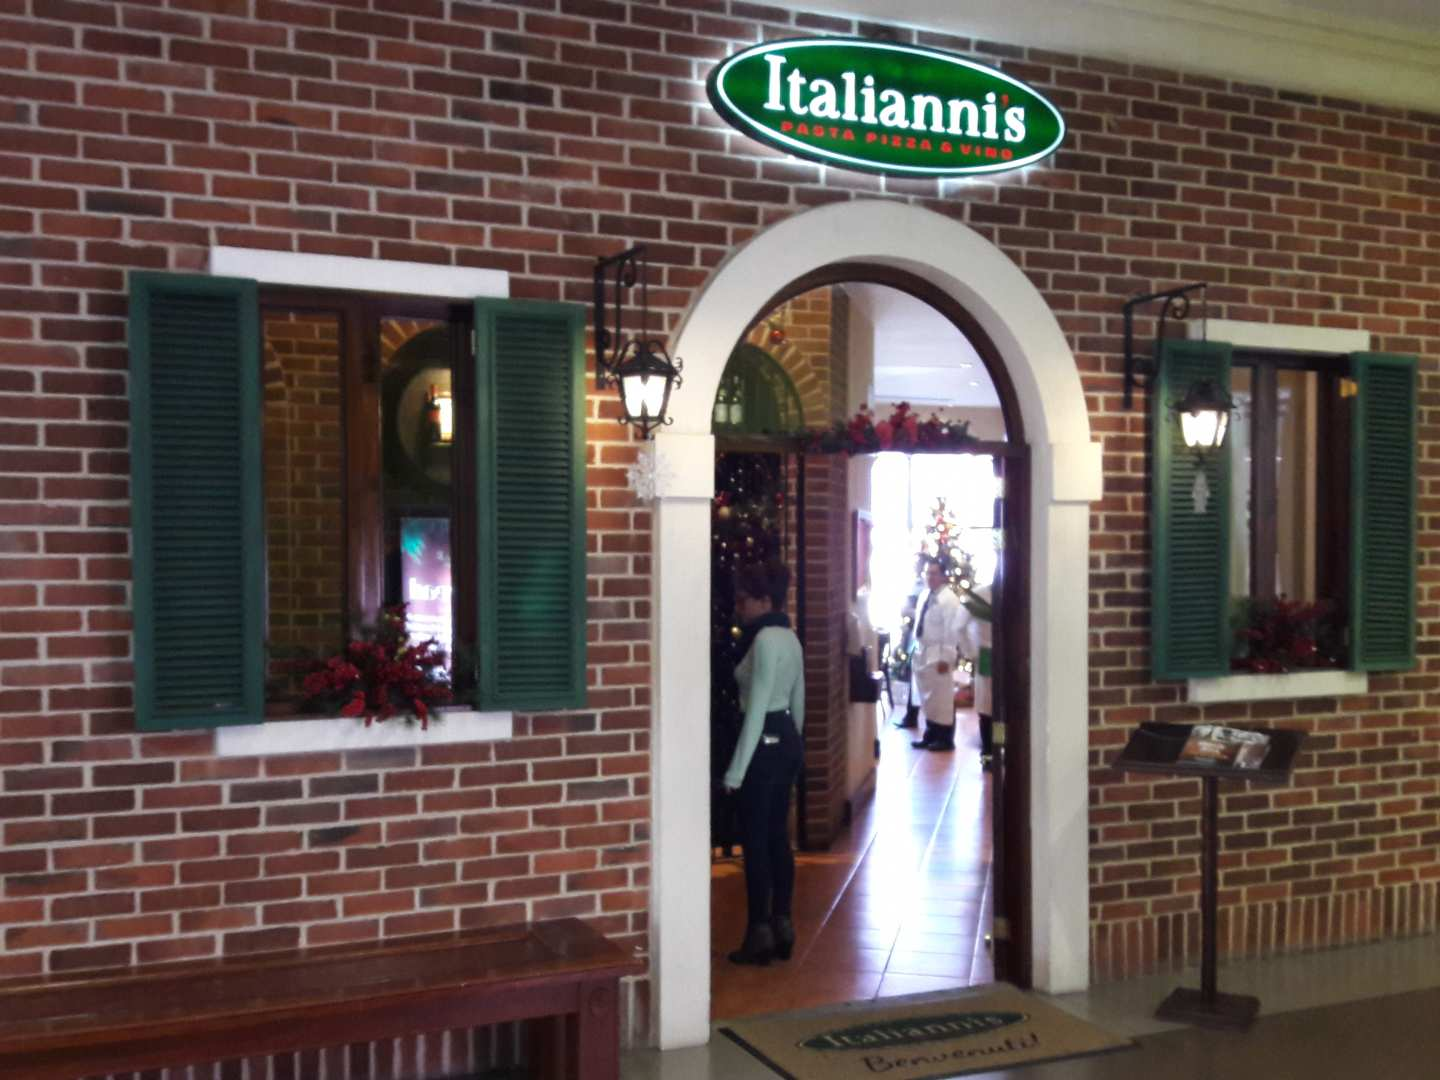 Italianni's (Design Center)